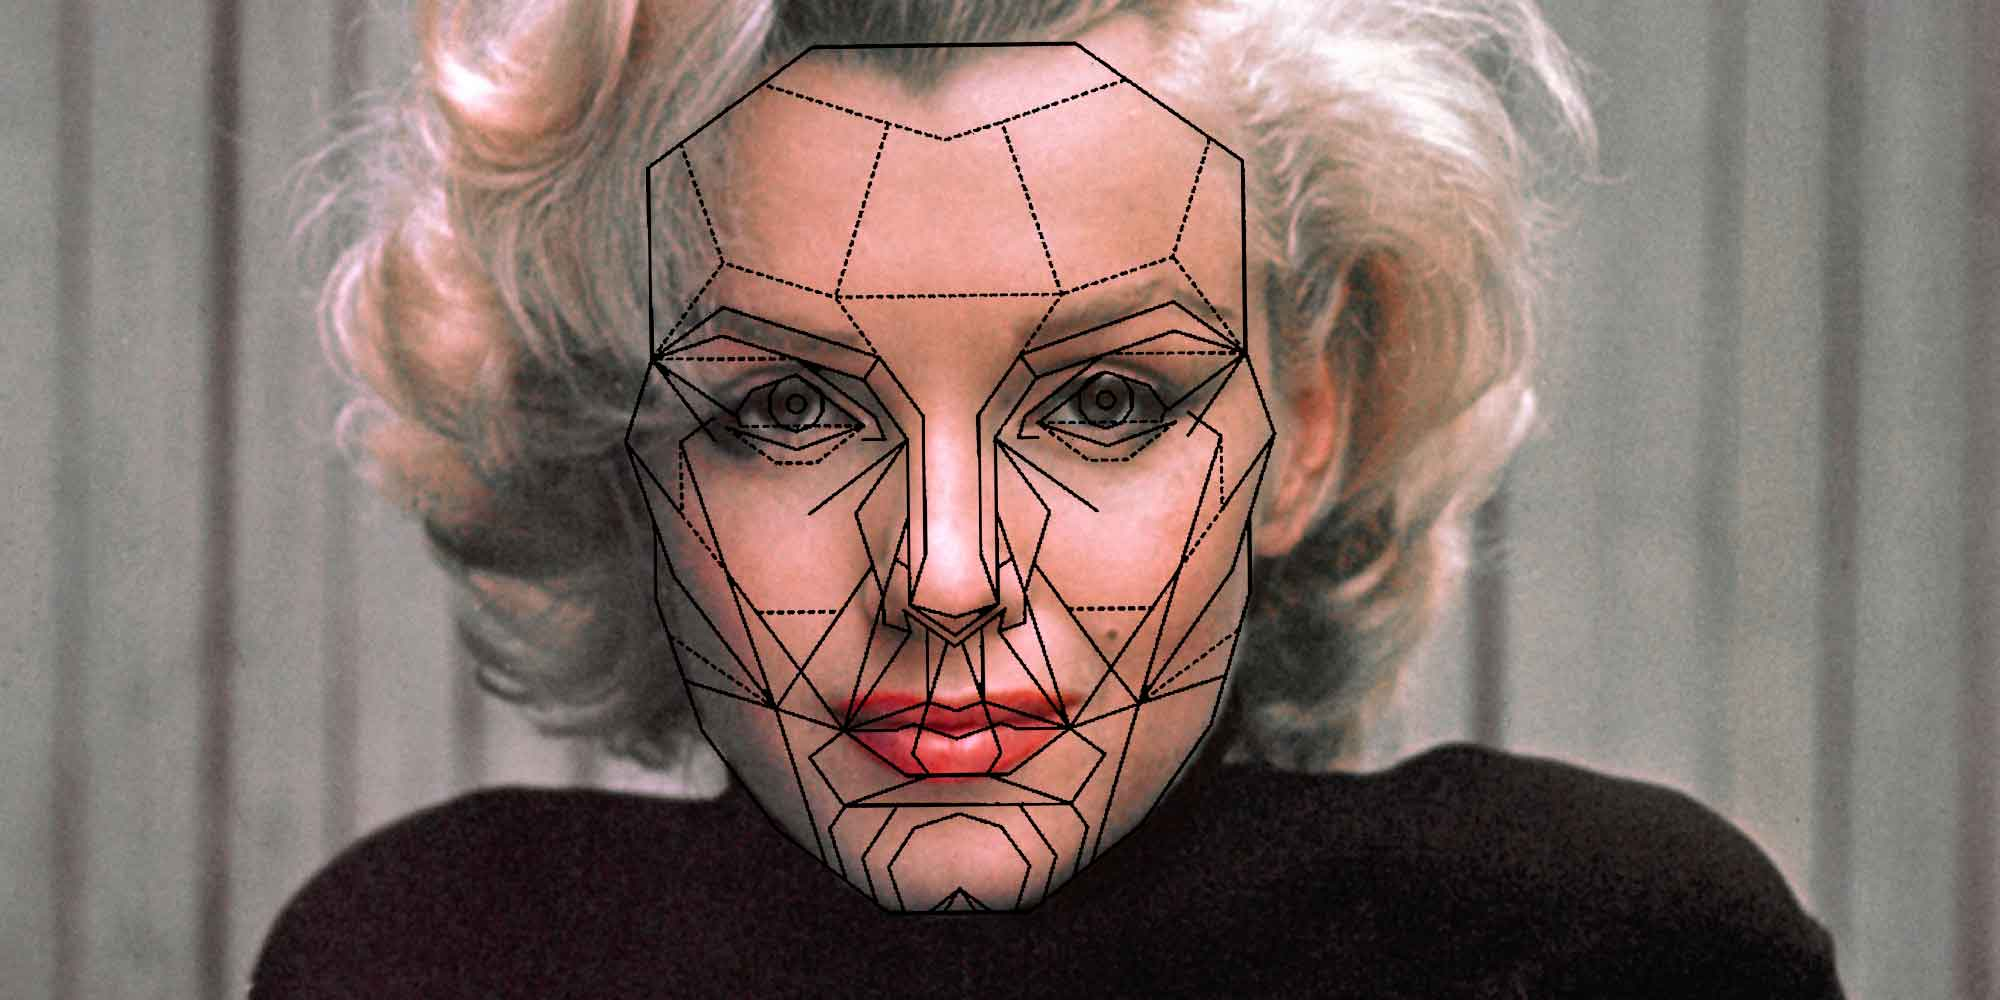 Golden ratio facial beauty